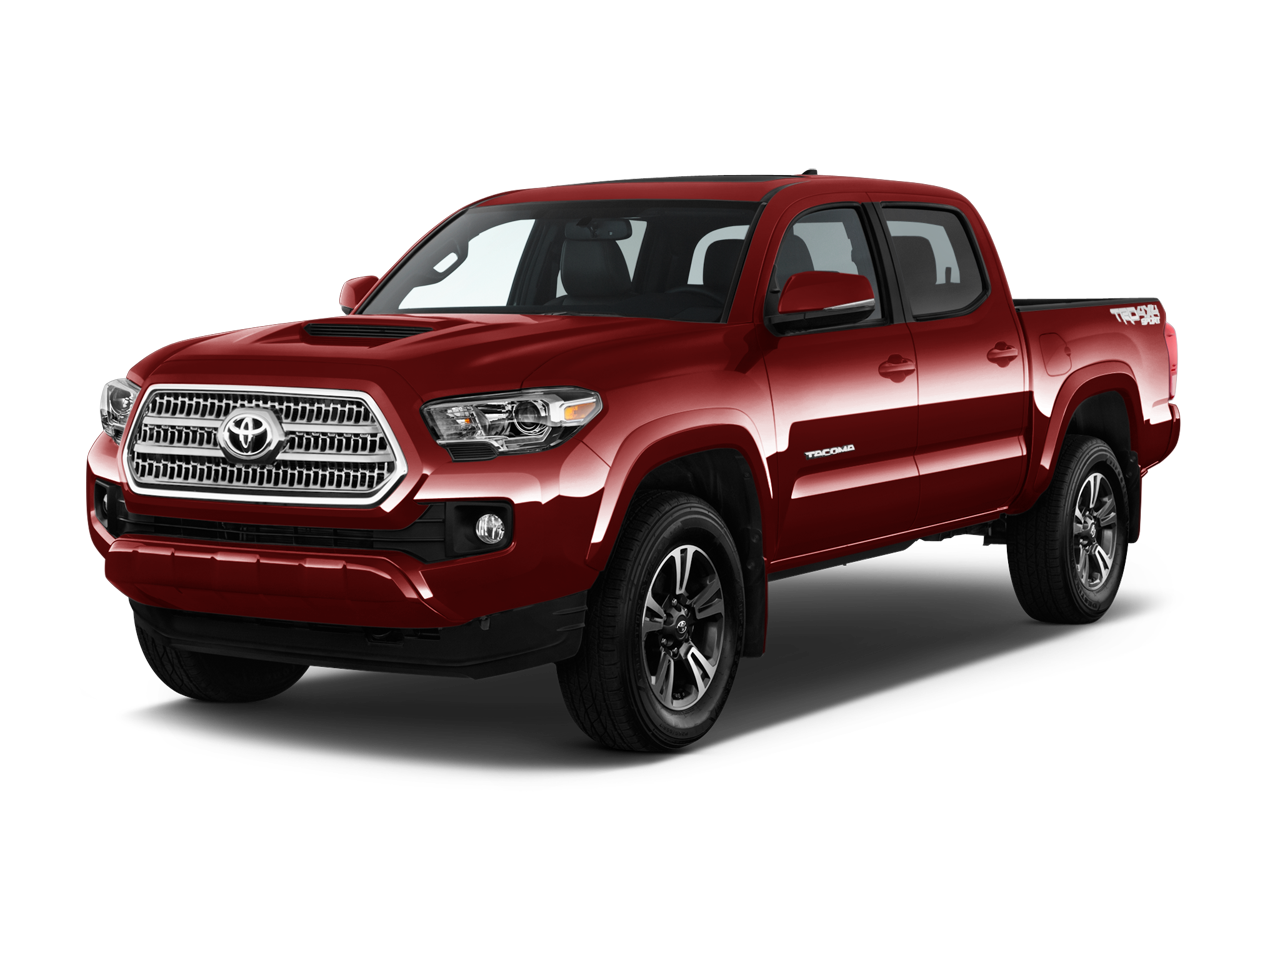 new 2017 toyota tacoma trd sport double cab 5 39 bed v6 4x4 at near morristown nj toyota of. Black Bedroom Furniture Sets. Home Design Ideas